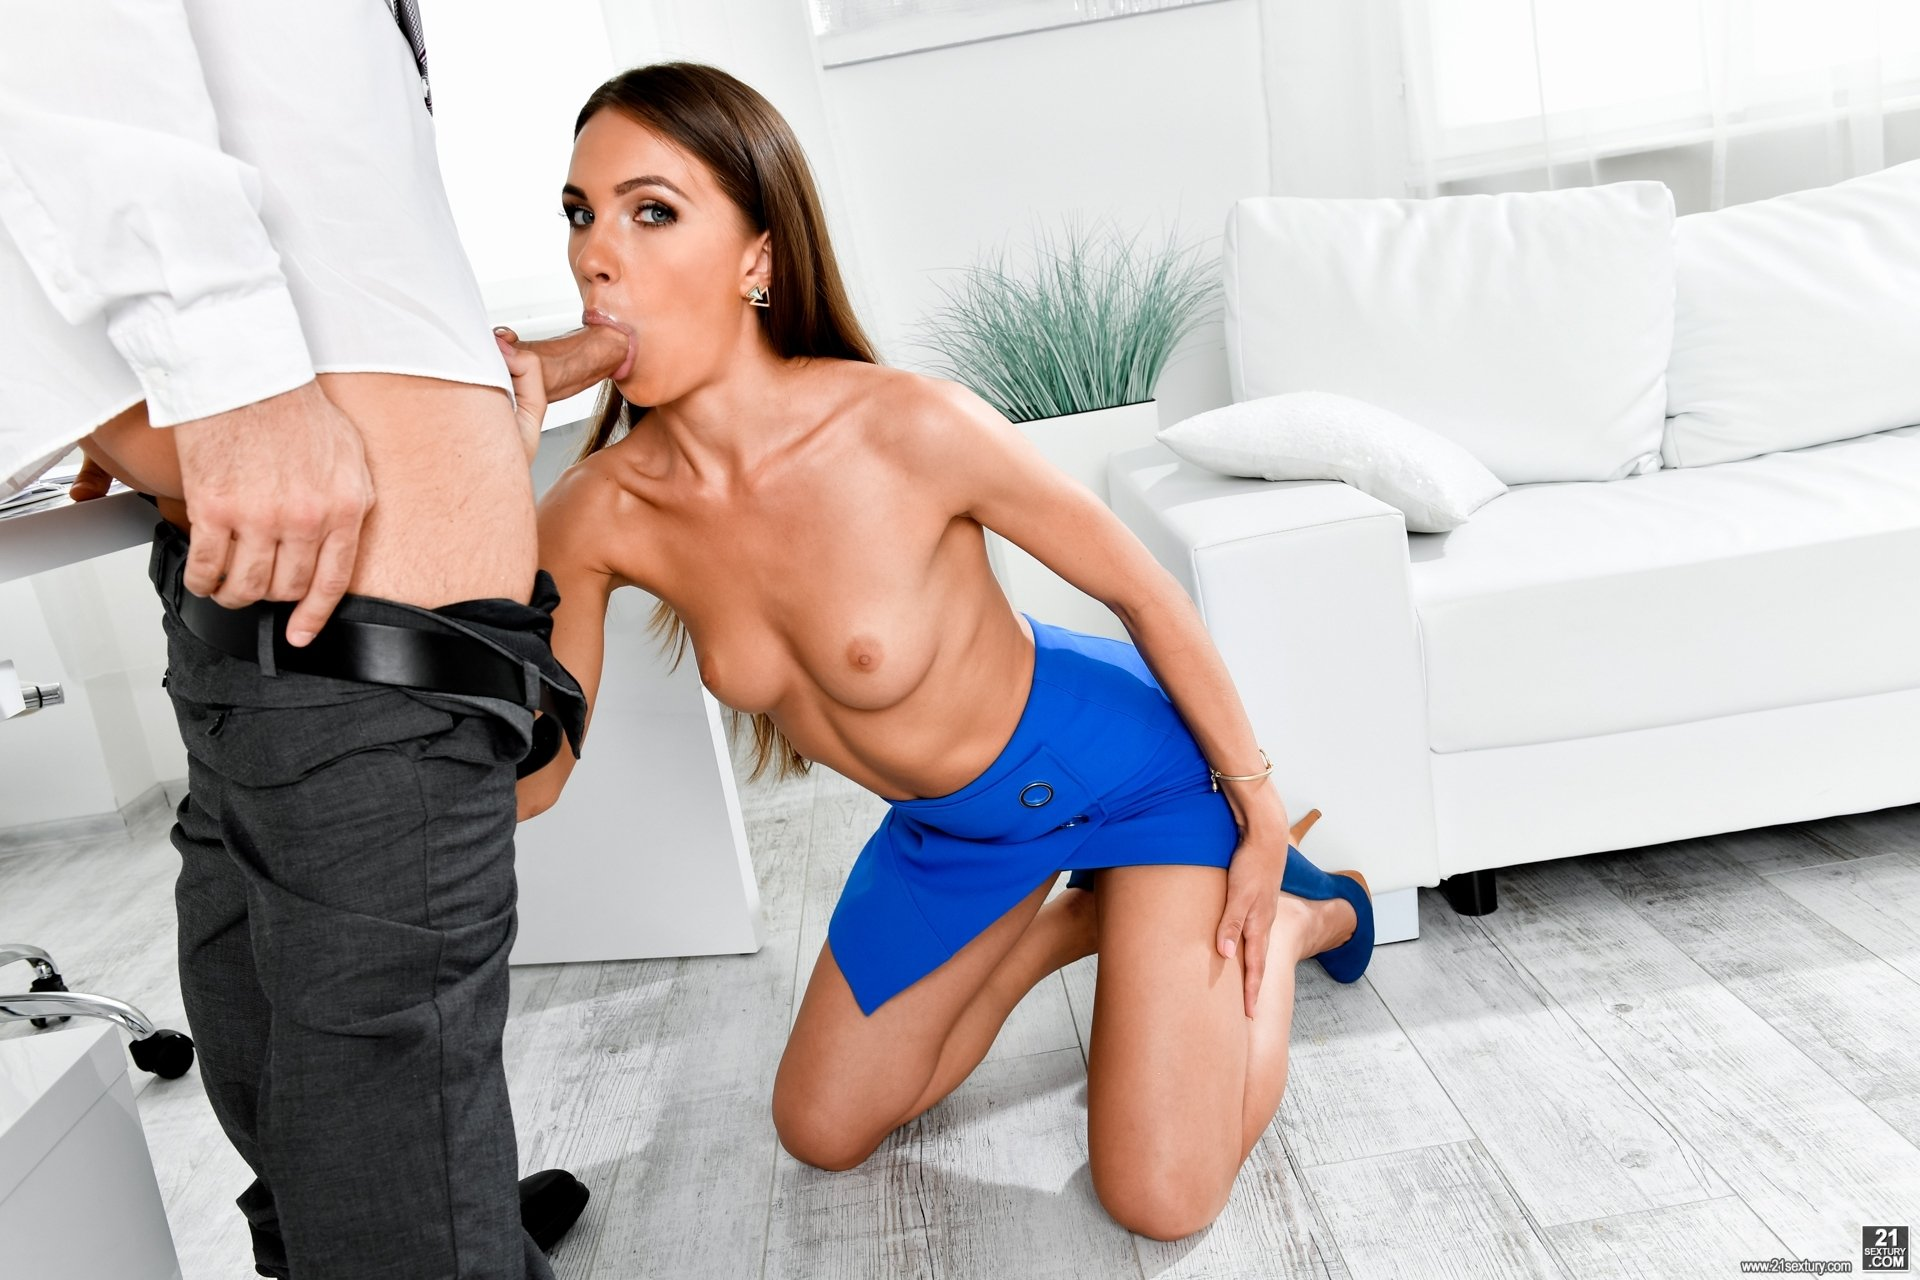 Full hd sex party #7